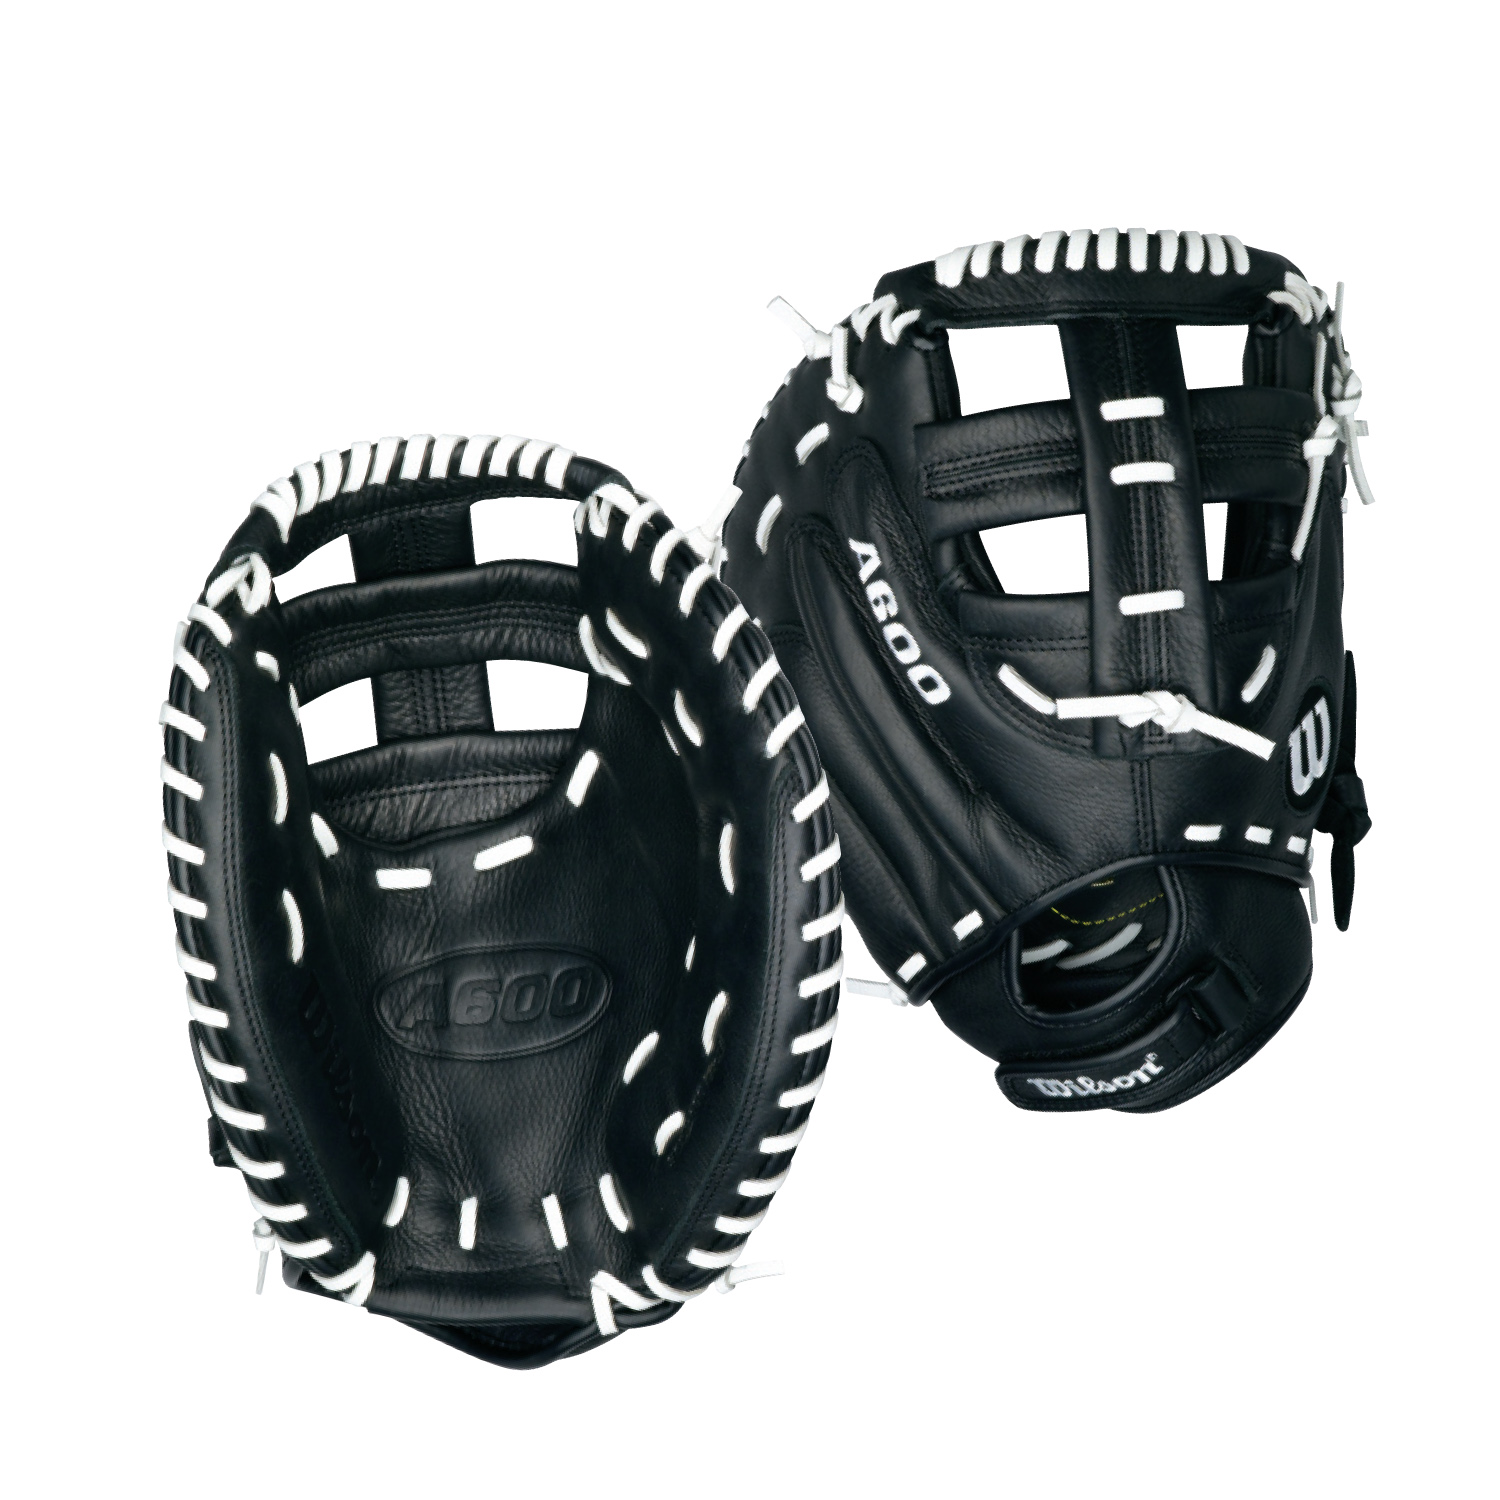 "Wilson A600 33"" Fast Pitch Catchers Mitt"